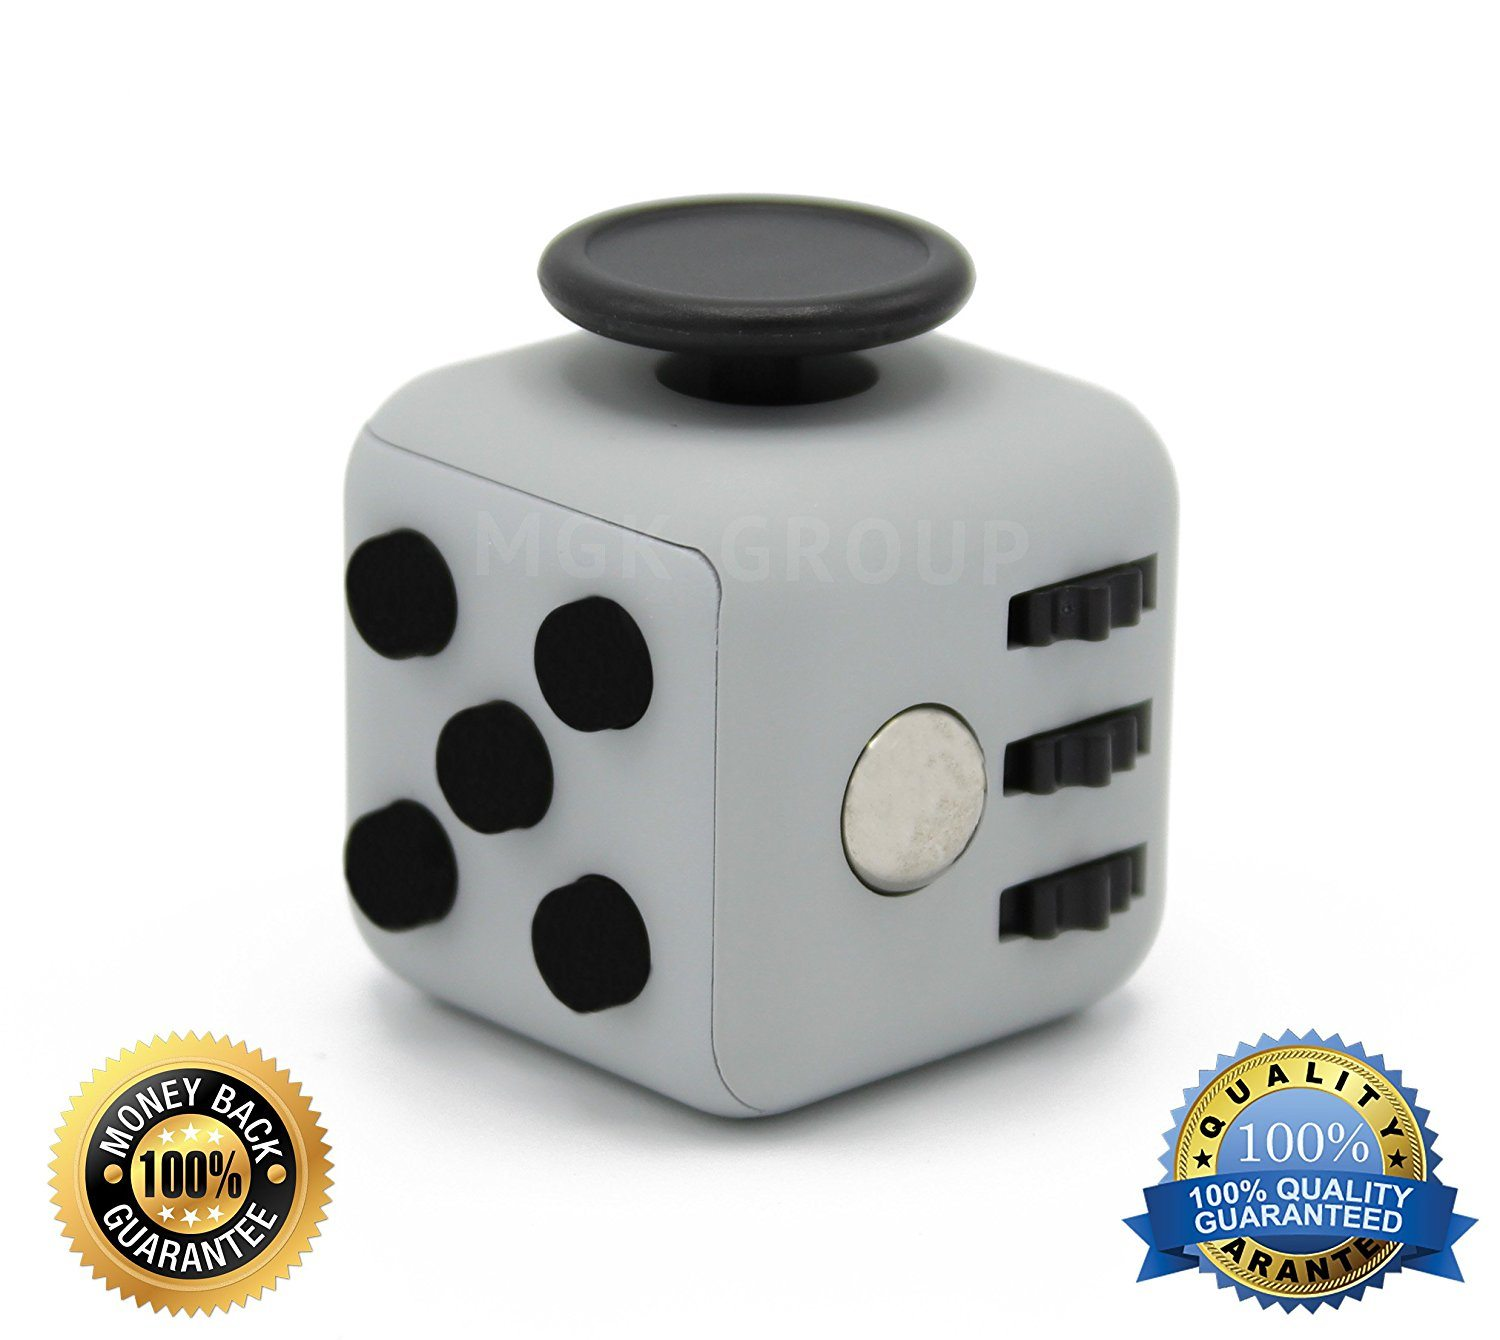 81hFgBPvYqL. SL1500  - Stress Cube for Fidgeters! Relieve Stress, Anxiety, and Boredom for Children and Adults. Gray Color